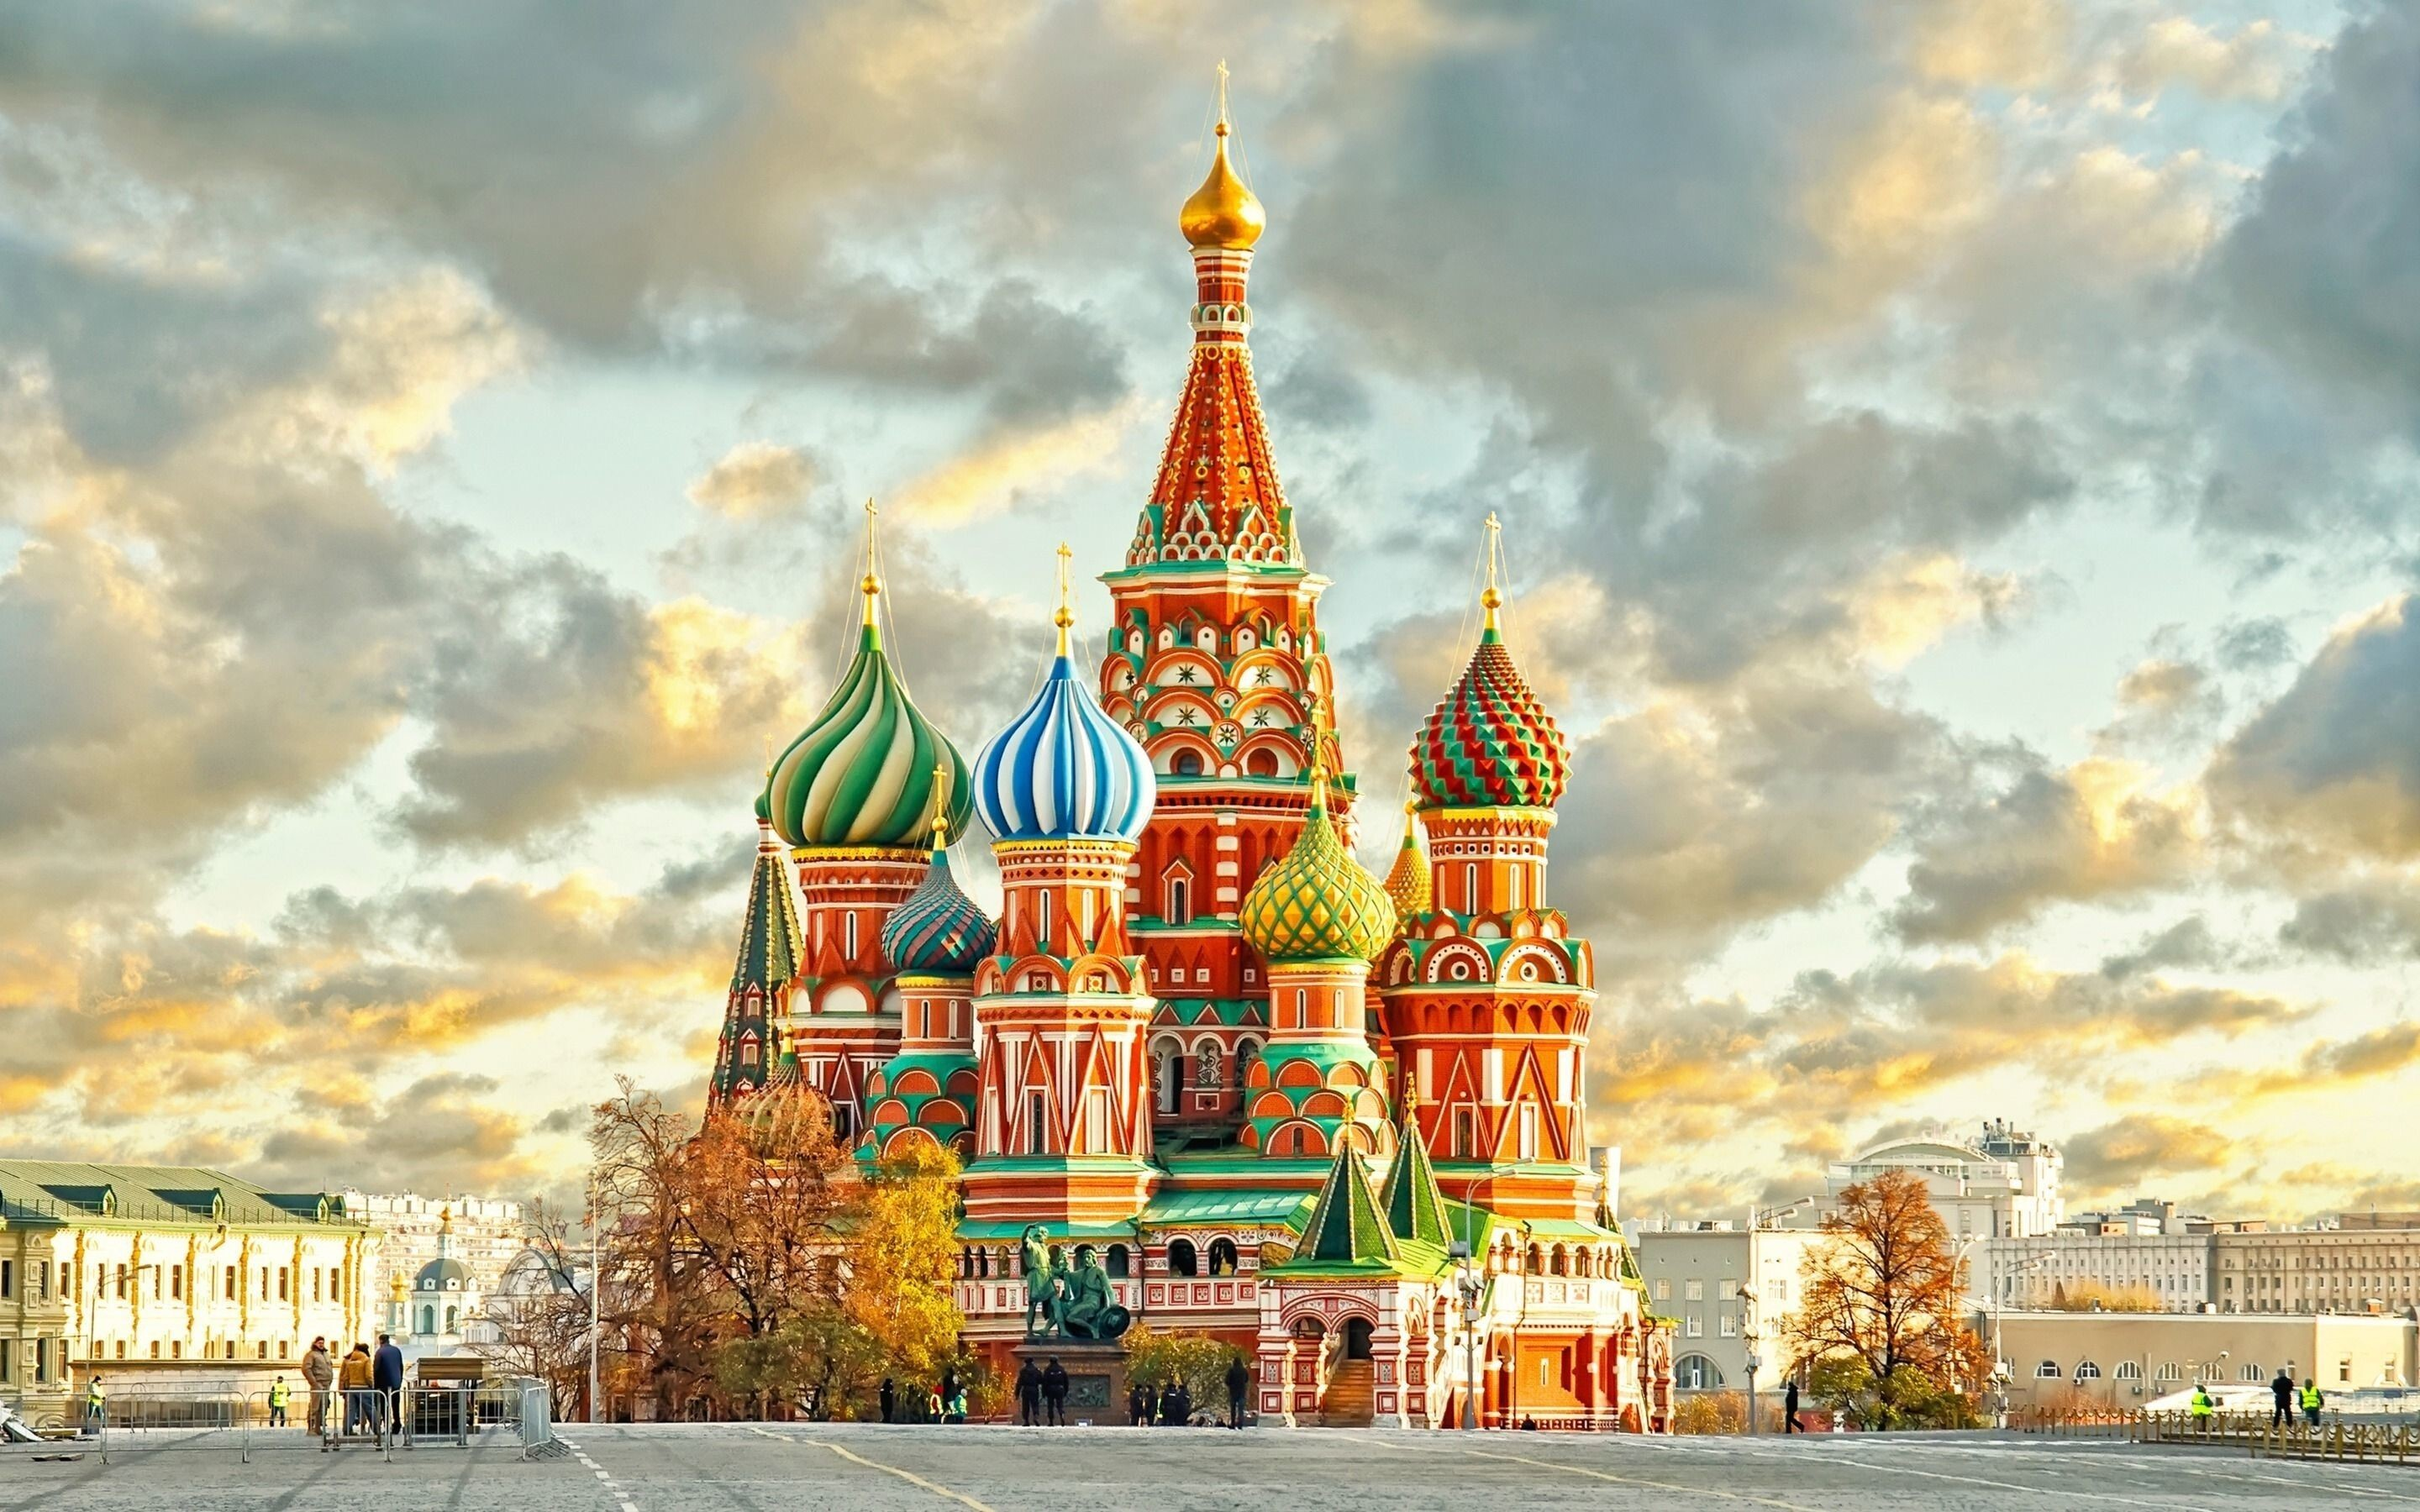 http://www.hdnicewallpapers.com/Walls/Big/Countries%20and%20City/Moscow_Kremlin_Popular_Tourist_Attraction_in_Russia_Wallpapers.jpg